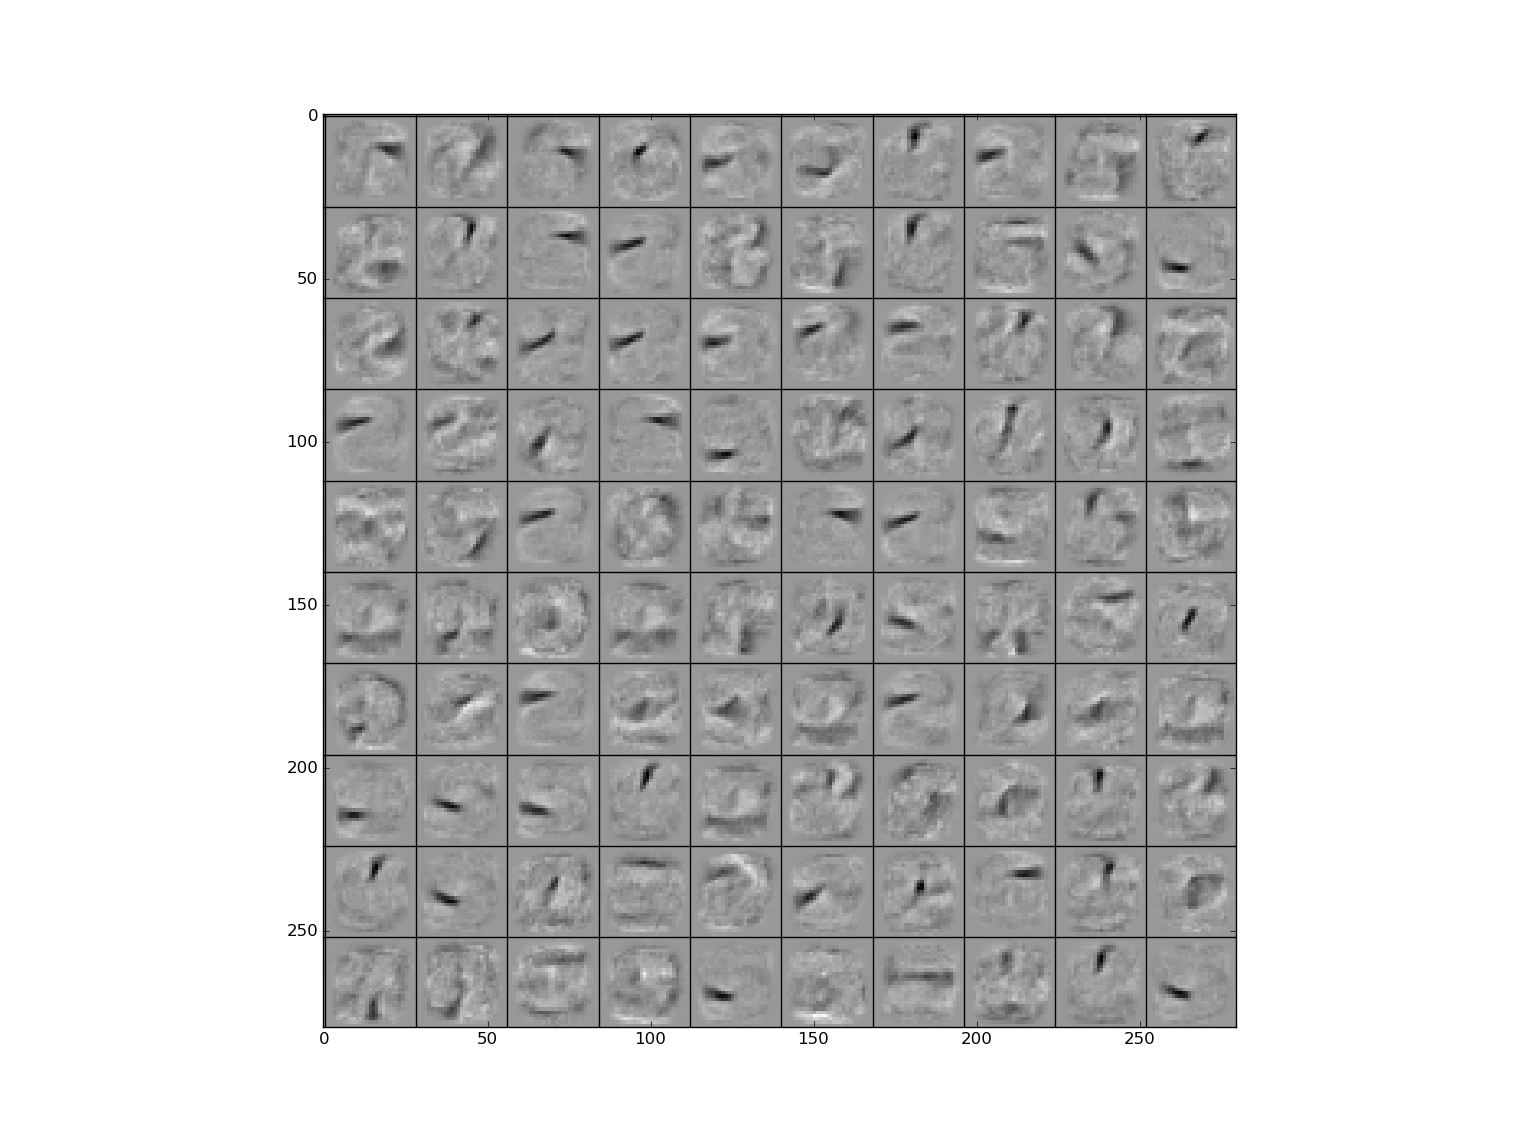 Visualization of features learned by first layer hidden units for (a) backprop and (b) dropout on the MNIST dataset.